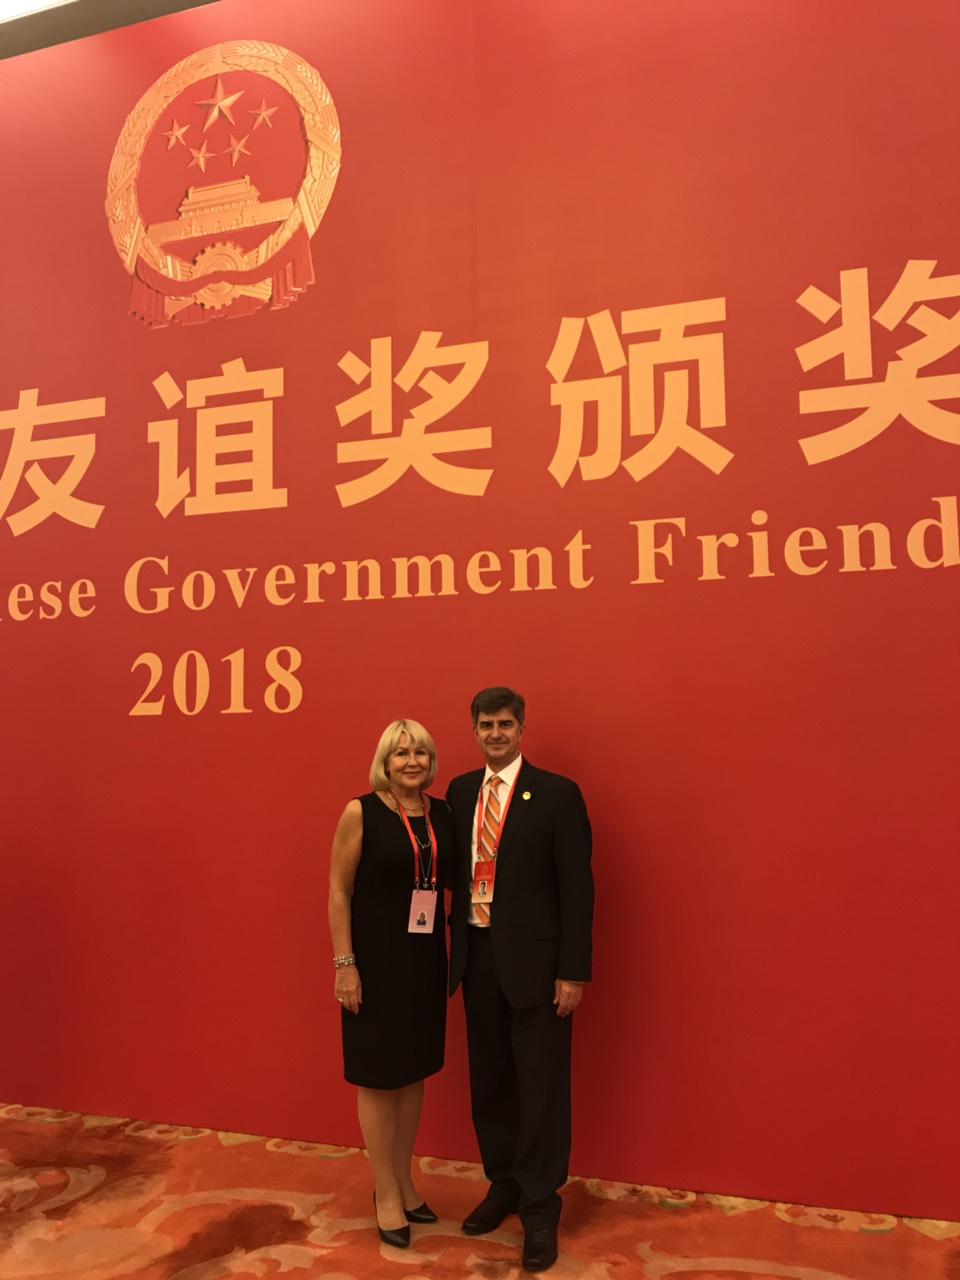 Professor Yury Gogotsi and his wife Larissa Gogotsi at Chineese Government Friendship Award ceremony in Great Hall of the People, in Beijing on September 29, 2018